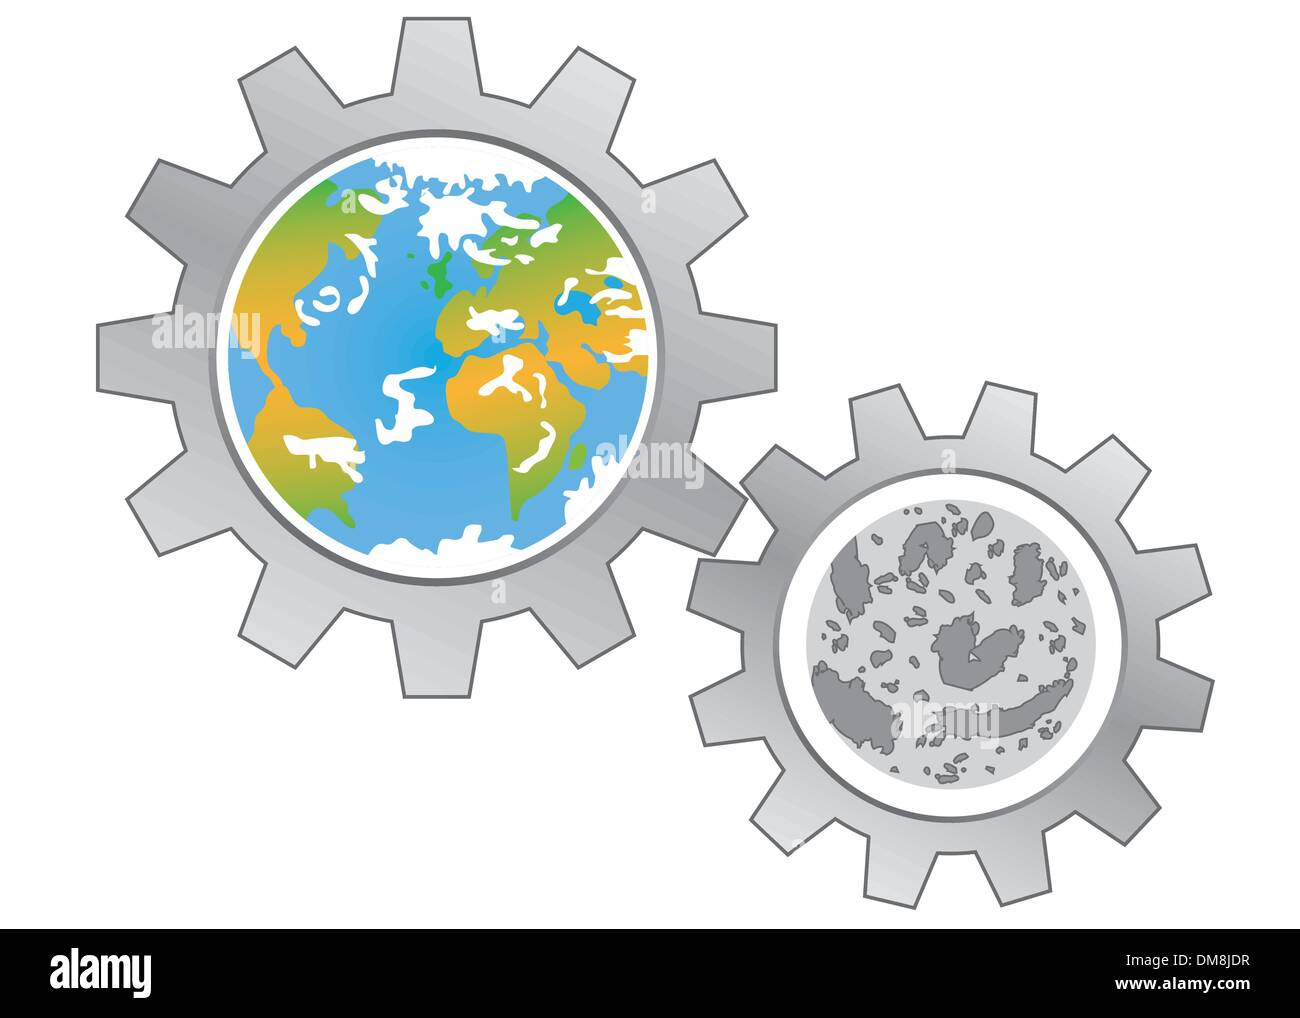 Earth and moon - Stock Image